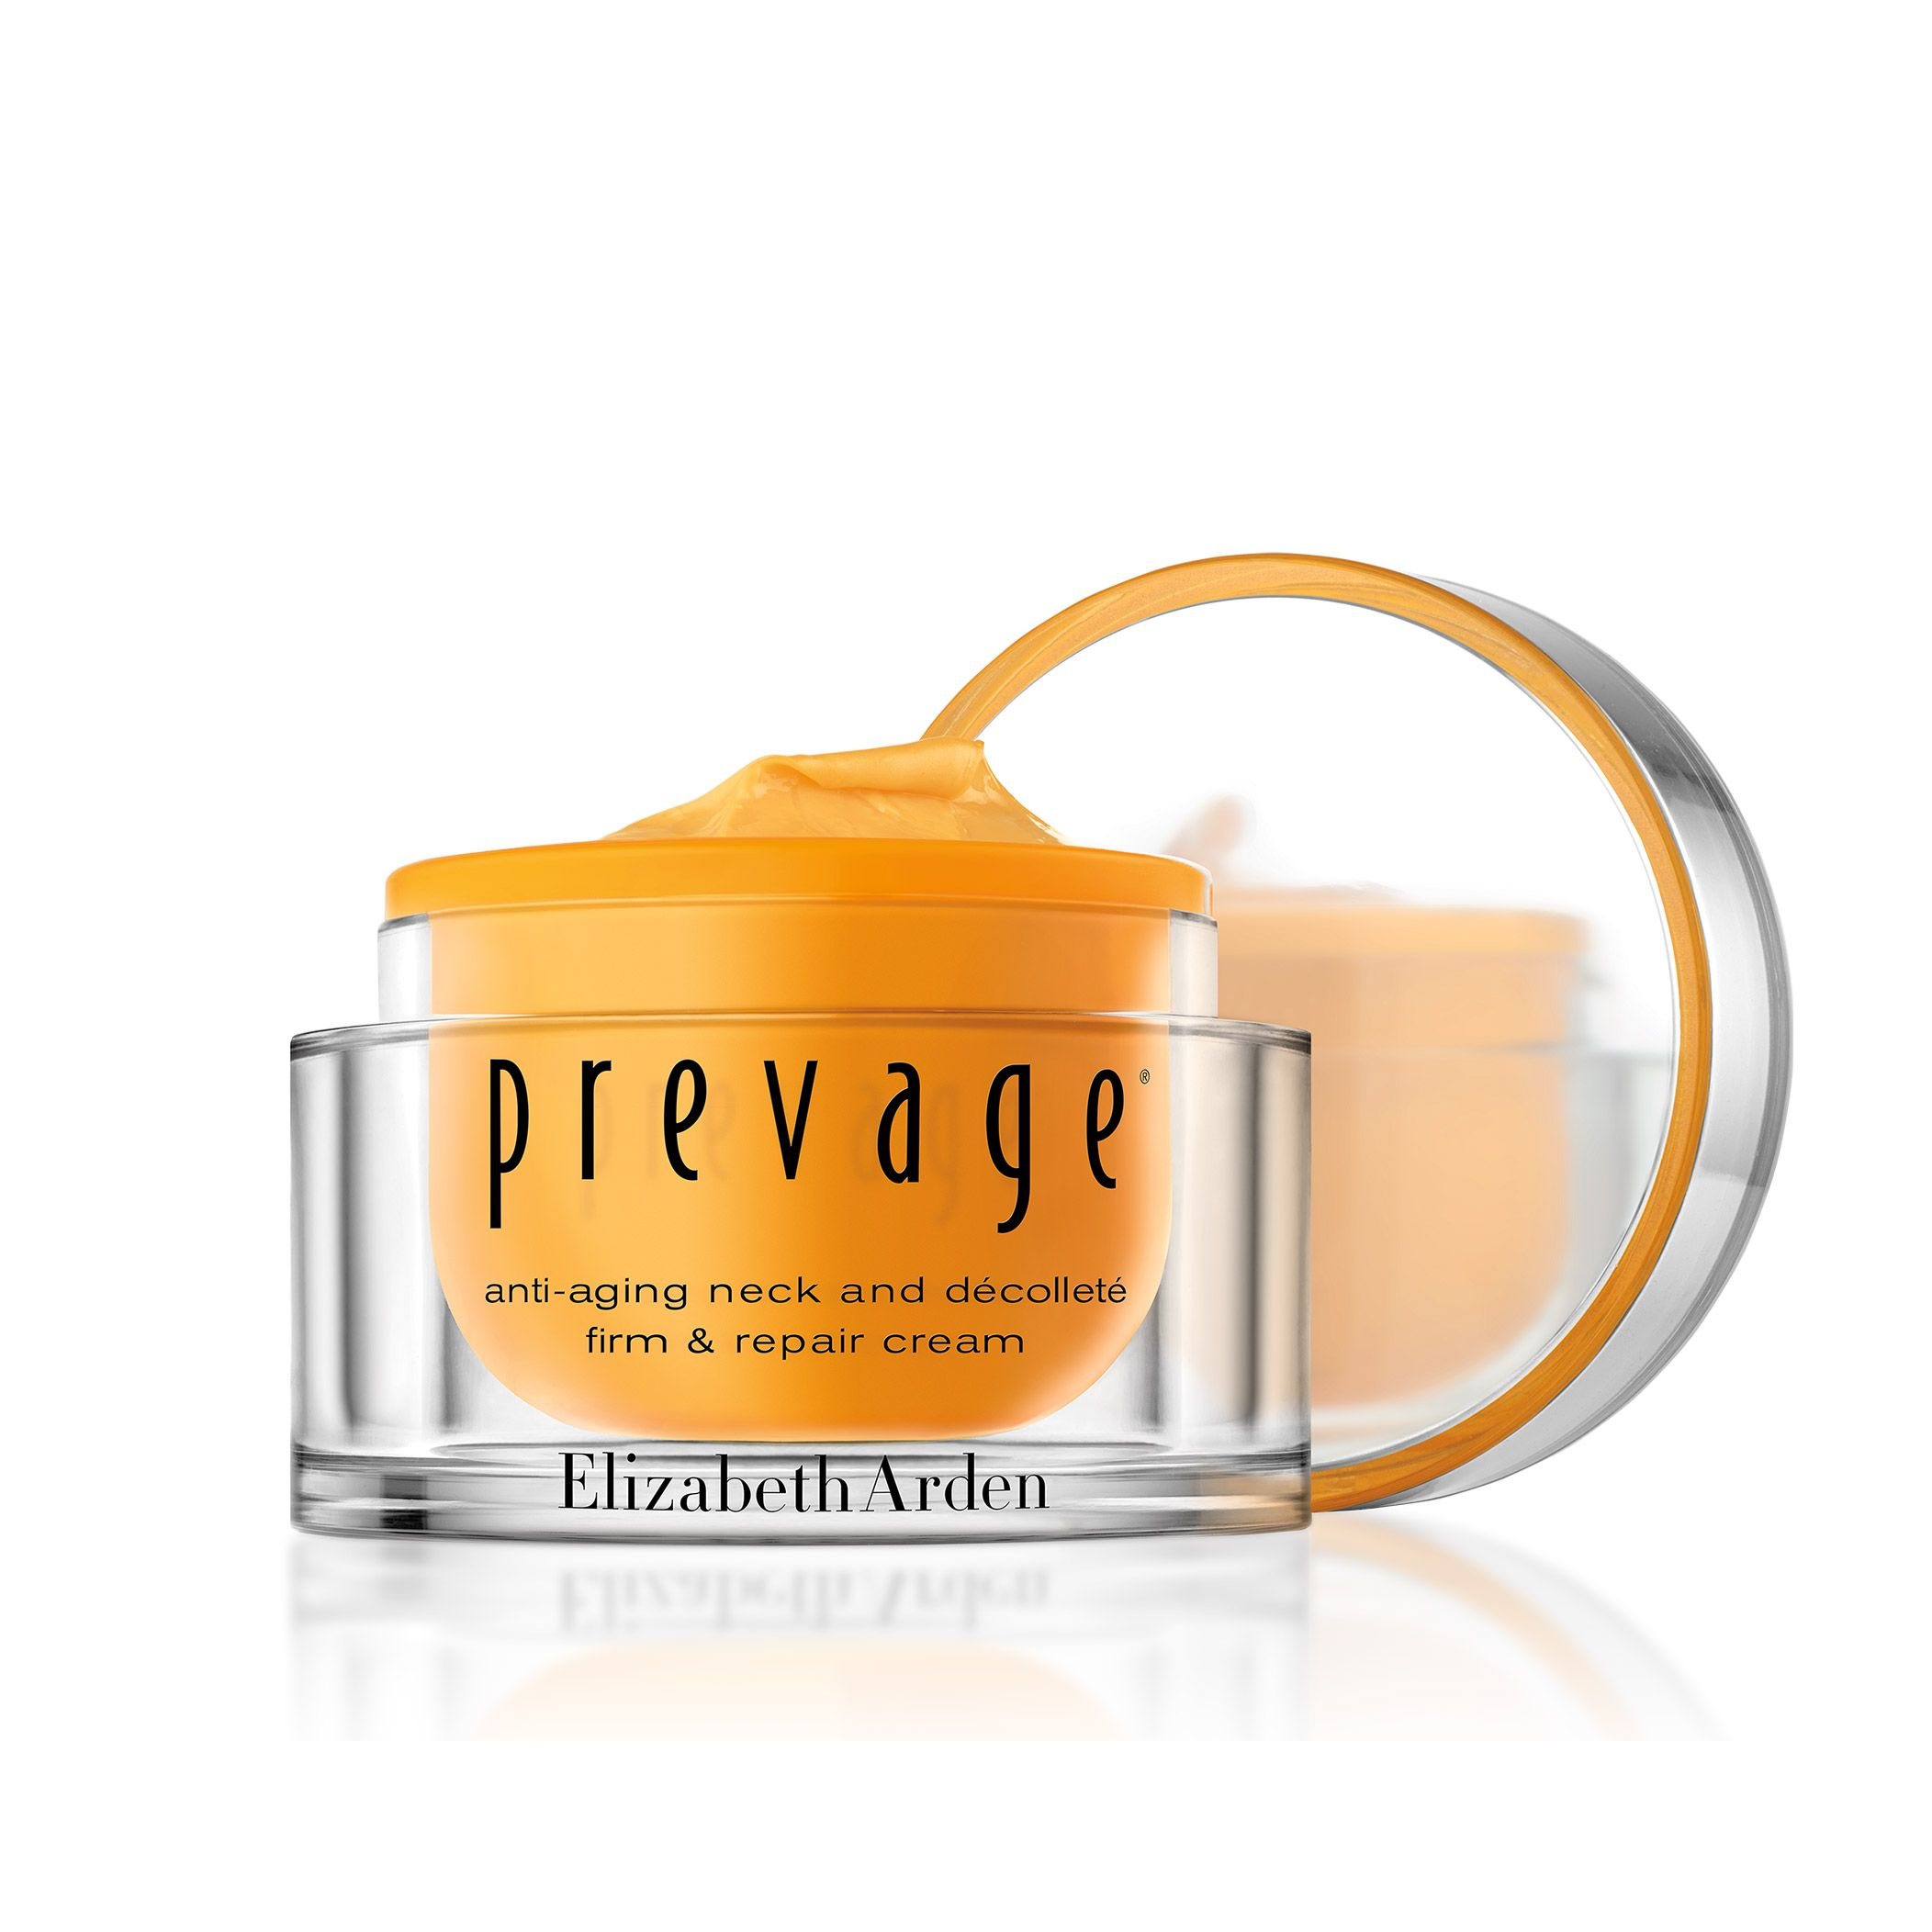 PREVAGE® AntiAging Neck and Décolleté Firm & Repair Cream